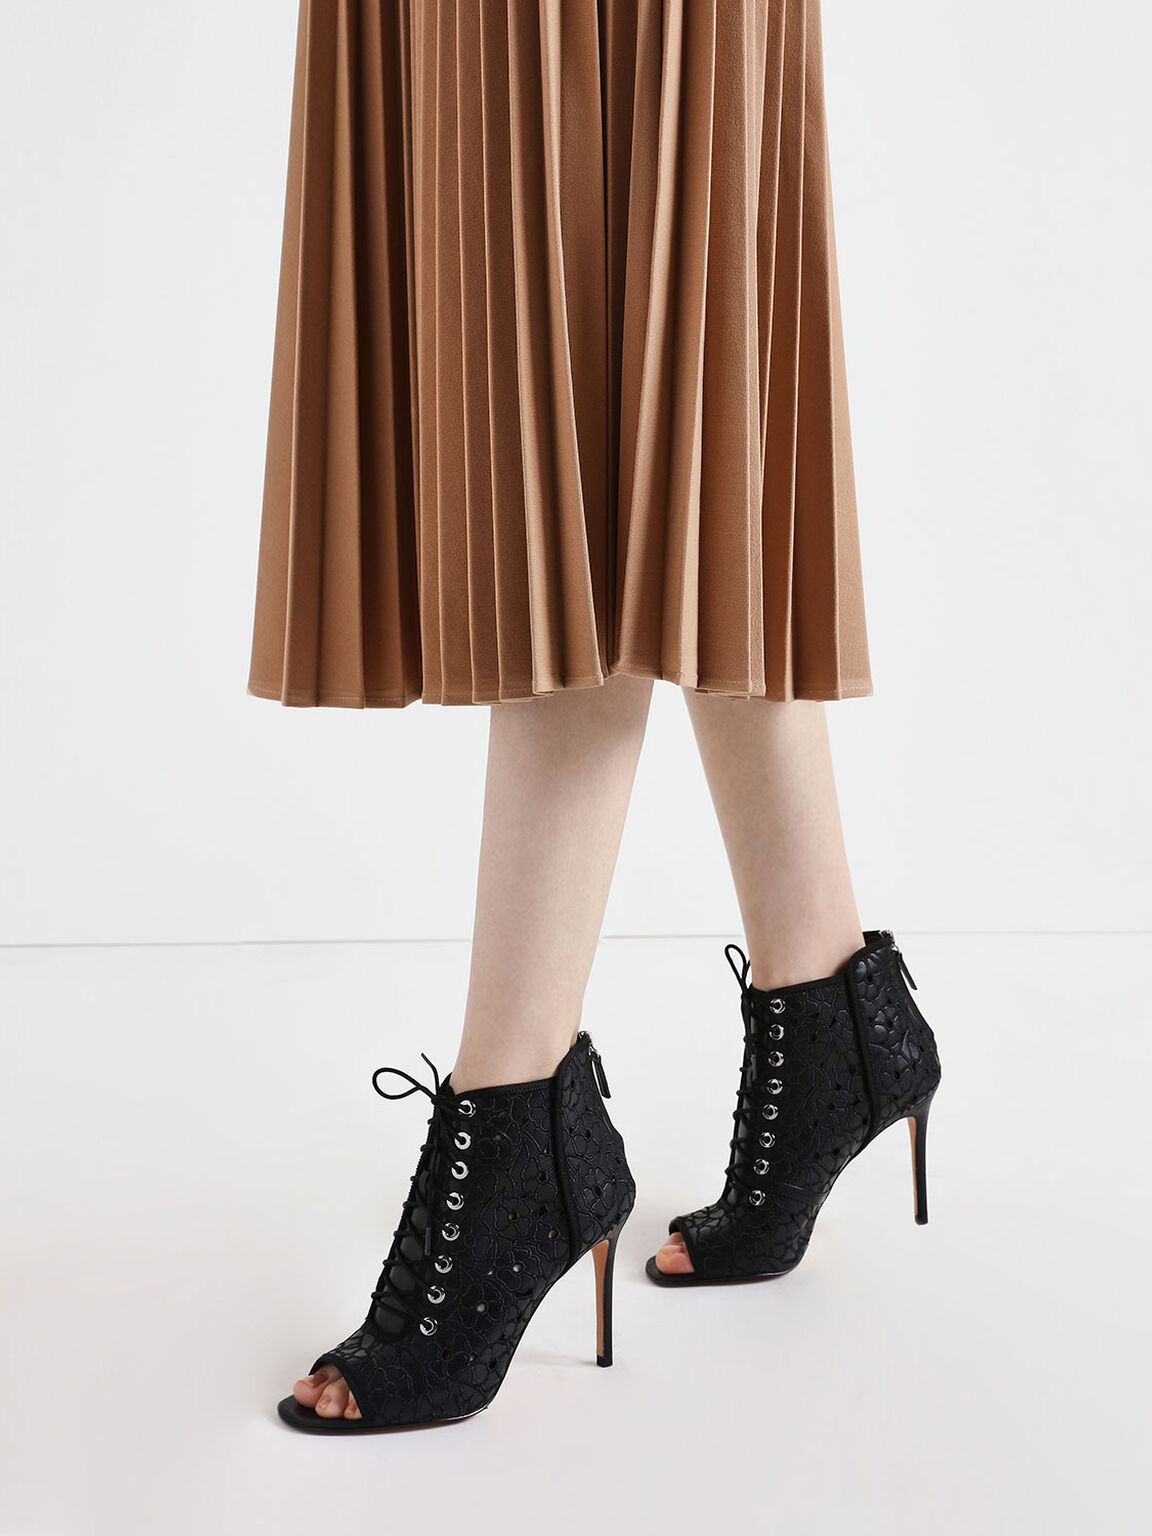 Floral Embroidery Lace-Up Peep Toe Ankle Boots, Black, hi-res